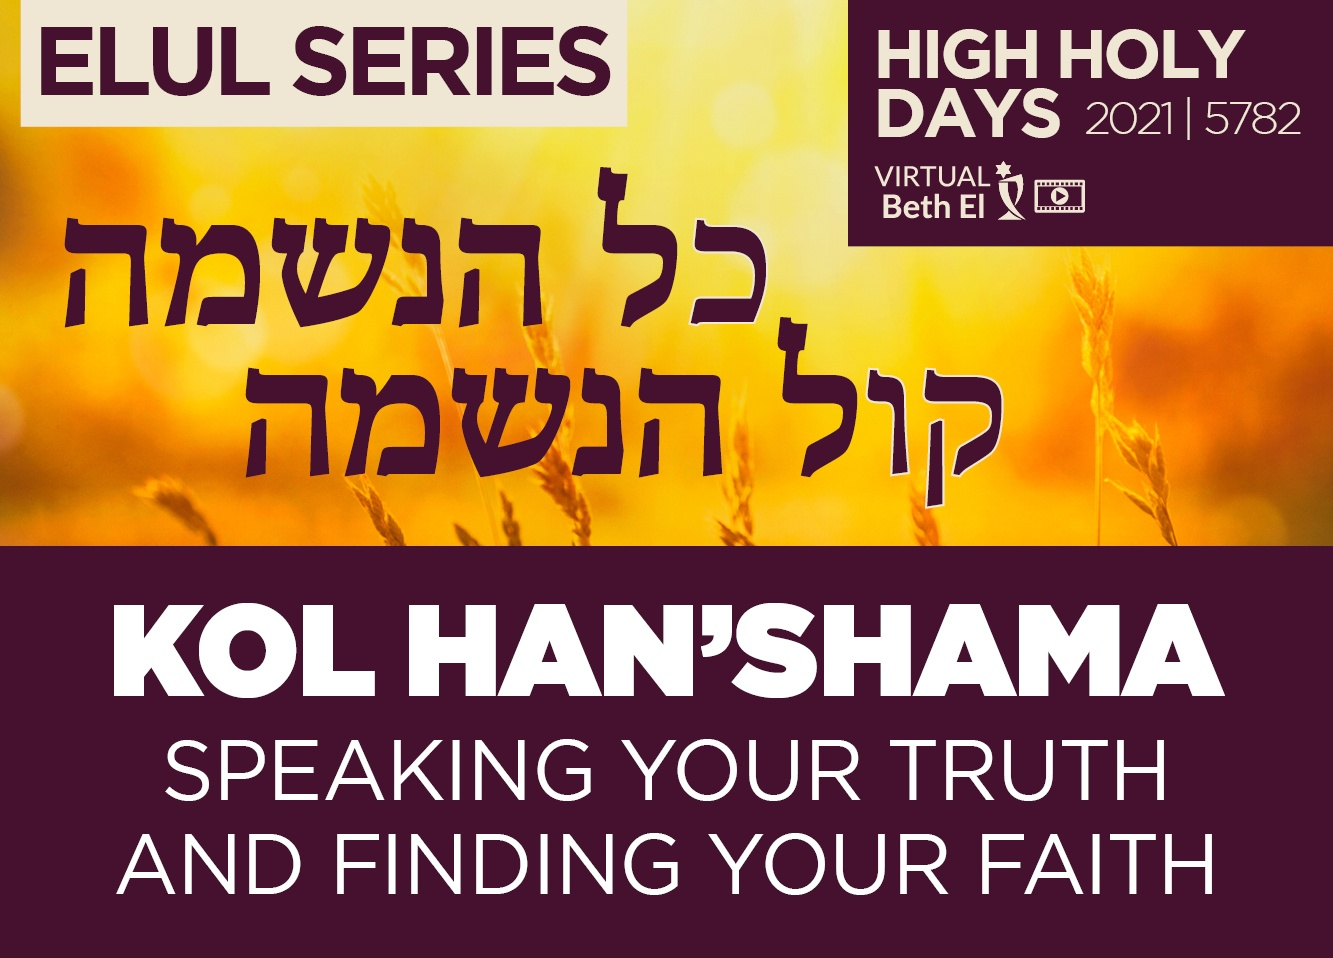 Kol Han'shama Elul Speaking Your Truth and Finding Your Faith event graphic August 2021 with Temple Beth El